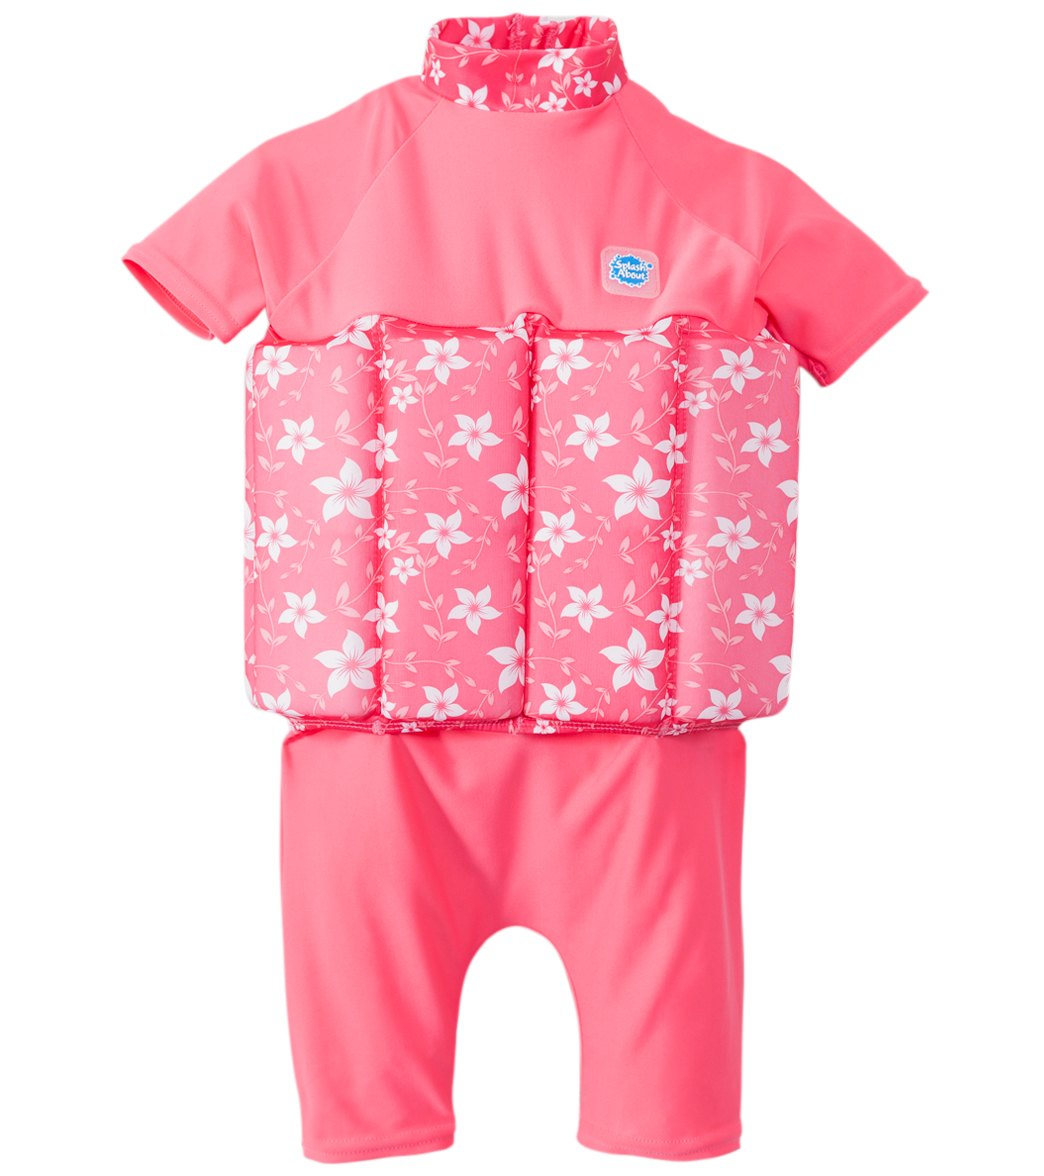 b8be31c6c0f22 Splash About Pink Blossom UV Float Suit (1-4 years) at SwimOutlet.com